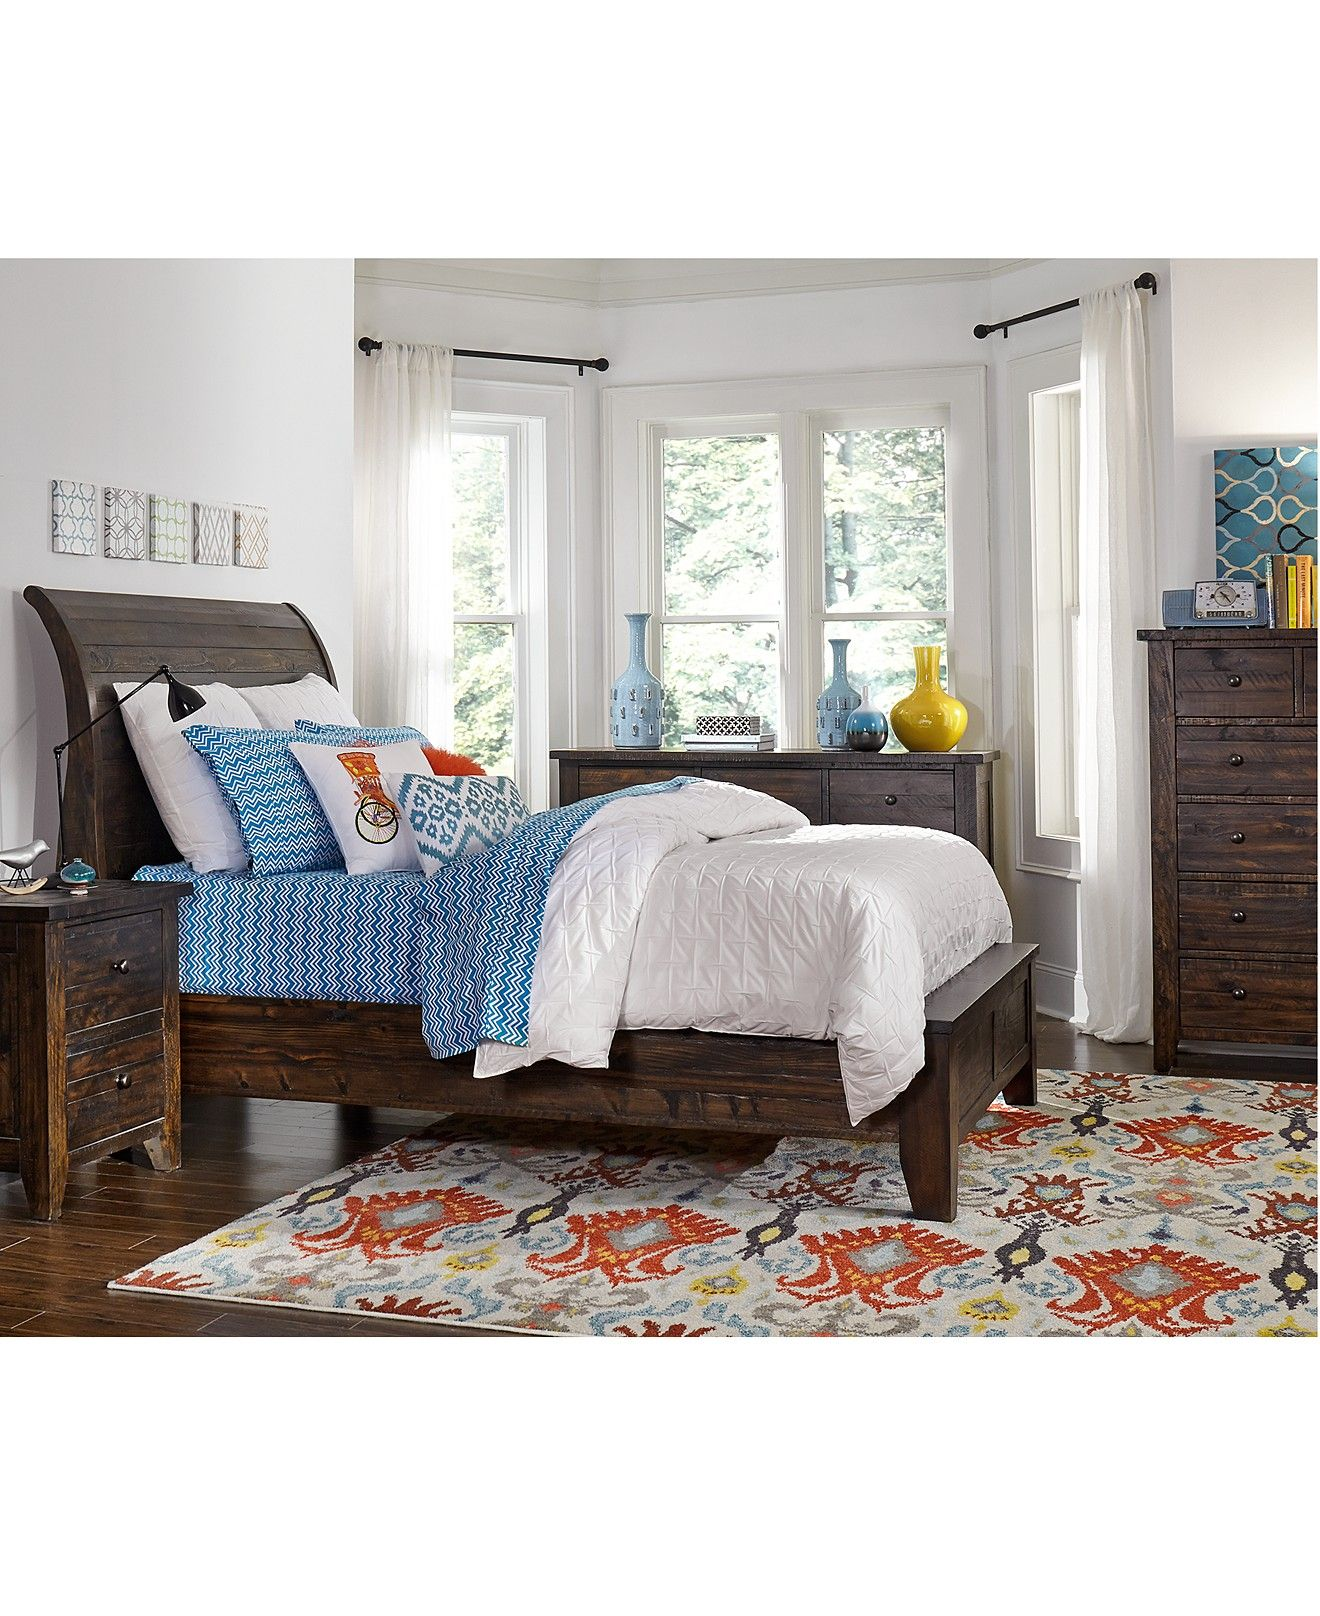 Best Ember 3 Piece Queen Bedroom Furniture Set With Dresser 400 x 300